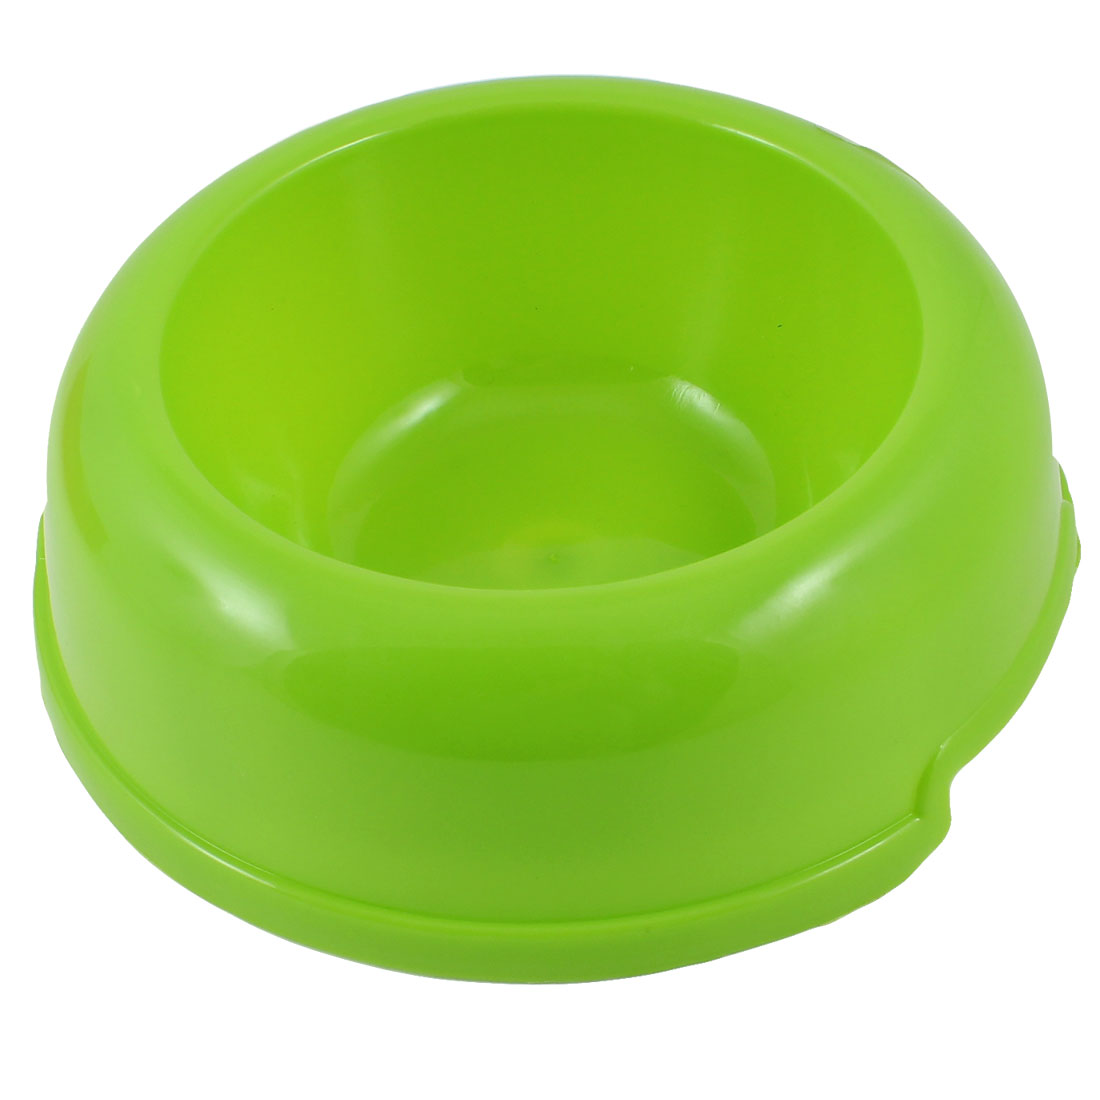 Green Plastic Round Design Pet Cat Dog Doggy Food Water Bowl Dish